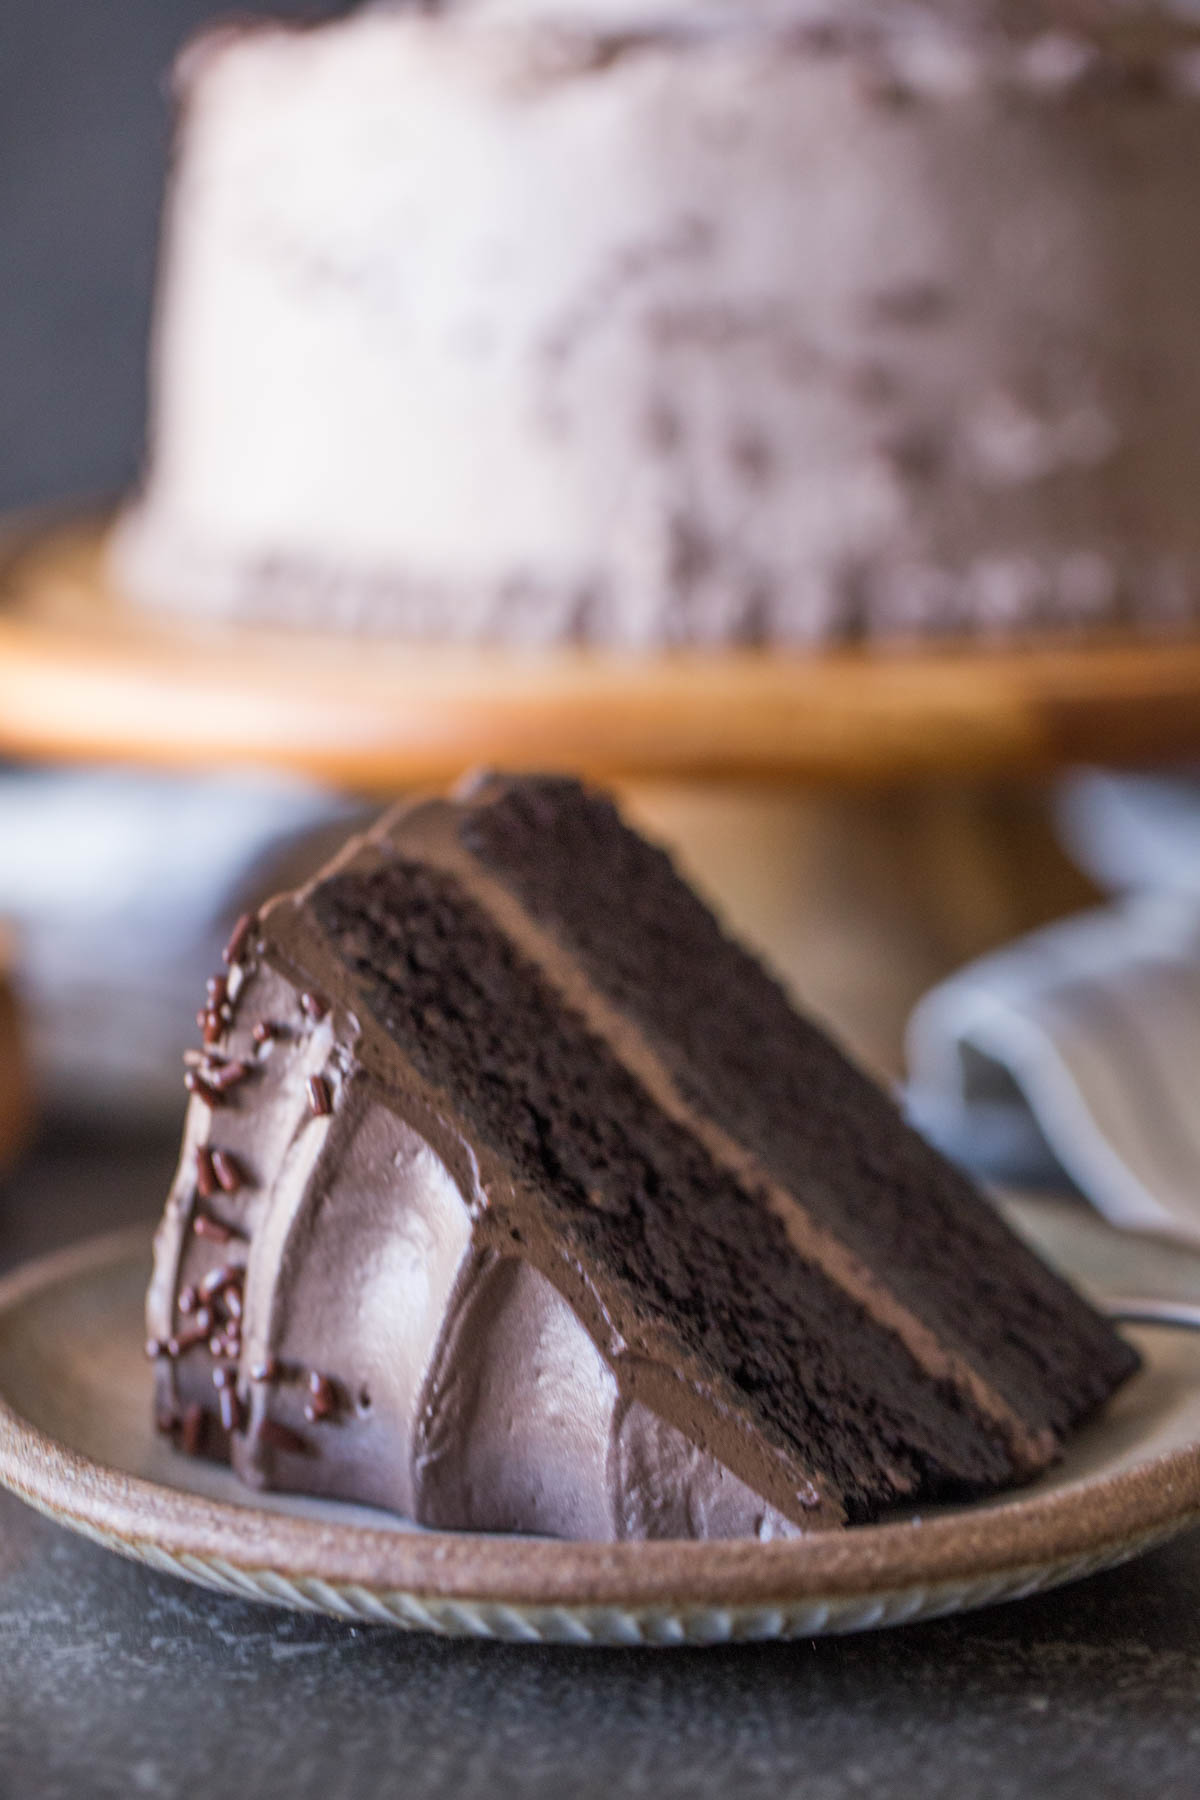 A slice of Dark Chocolate Cake With Whipped Cream Frosting on a plate, with the rest of the cake on a cake stand in the background.